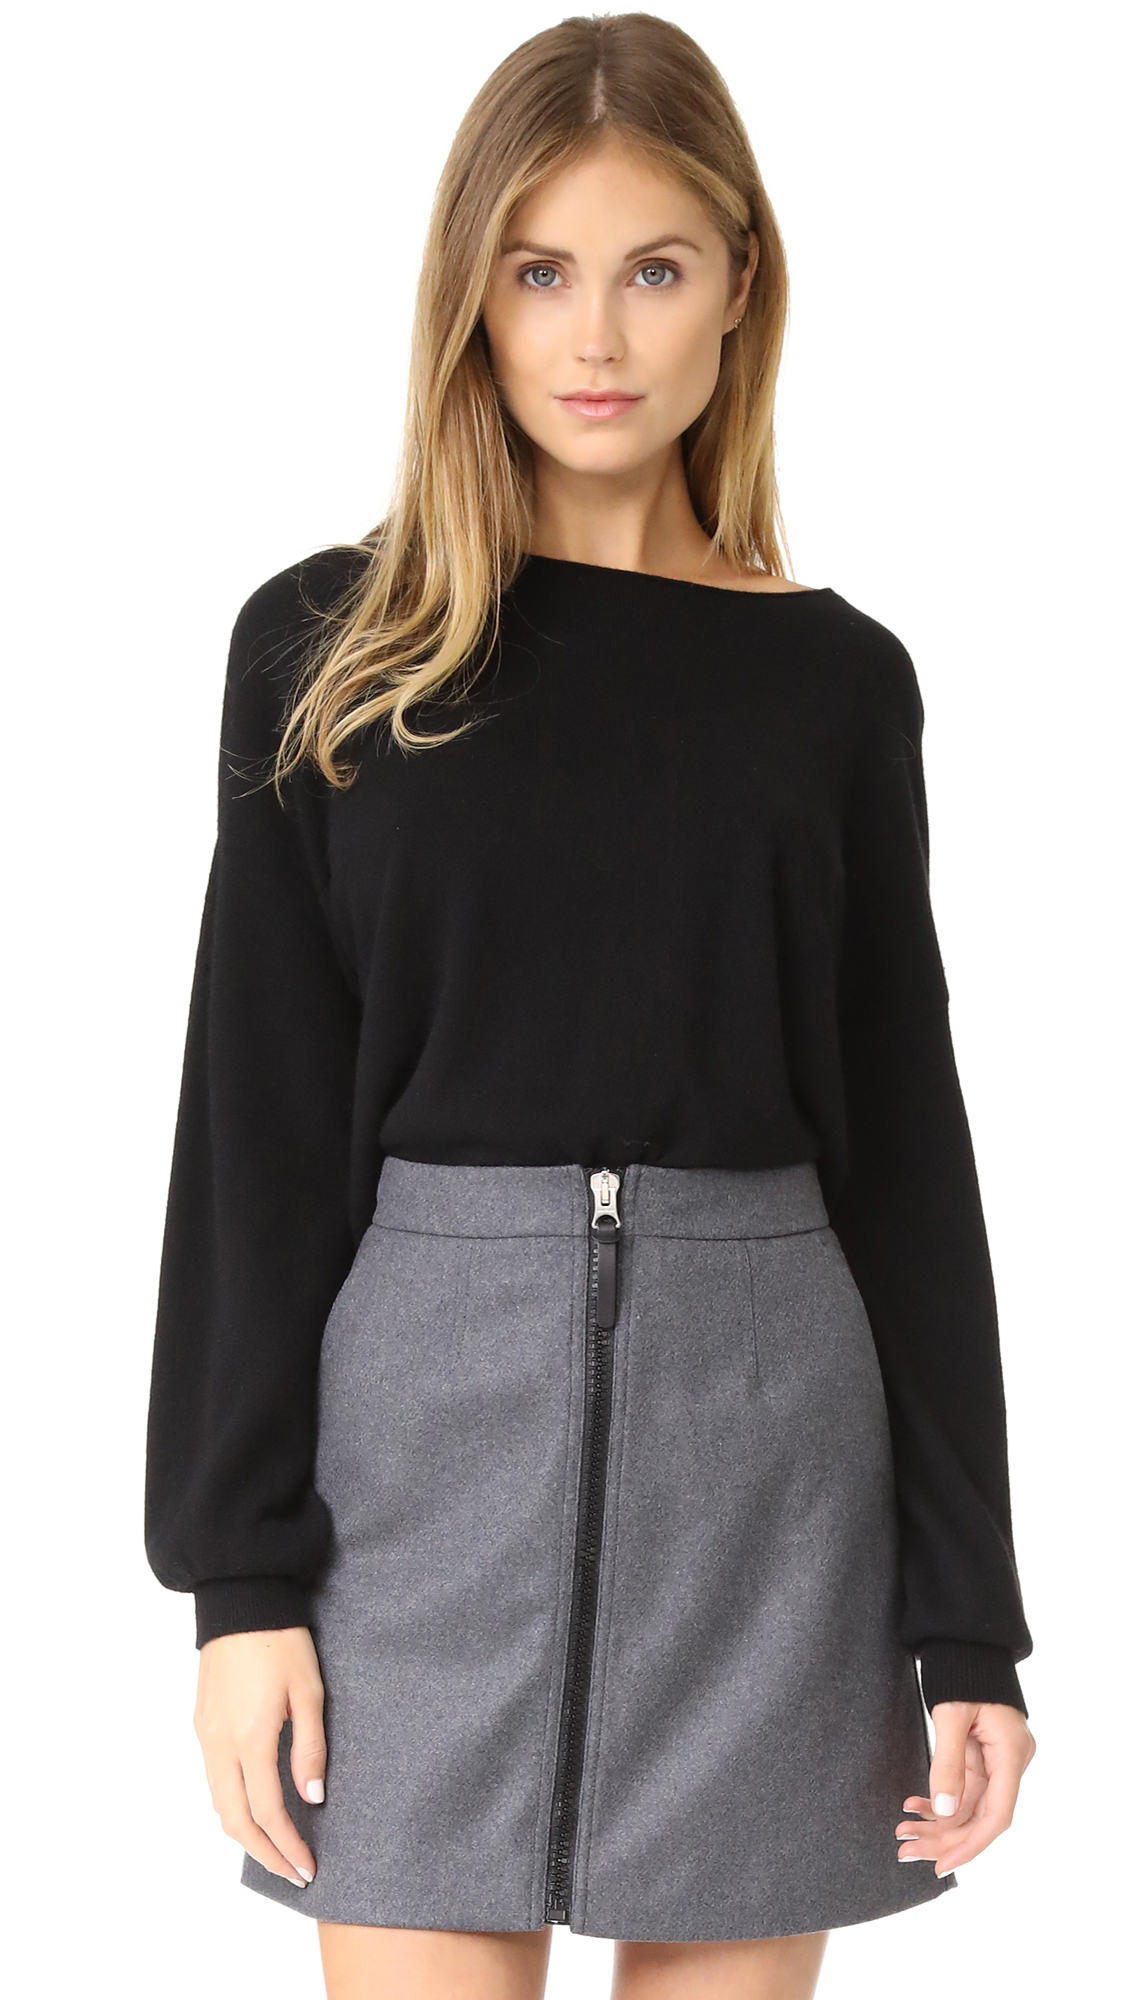 360 SWEATER Zoe Cashmere Sweater